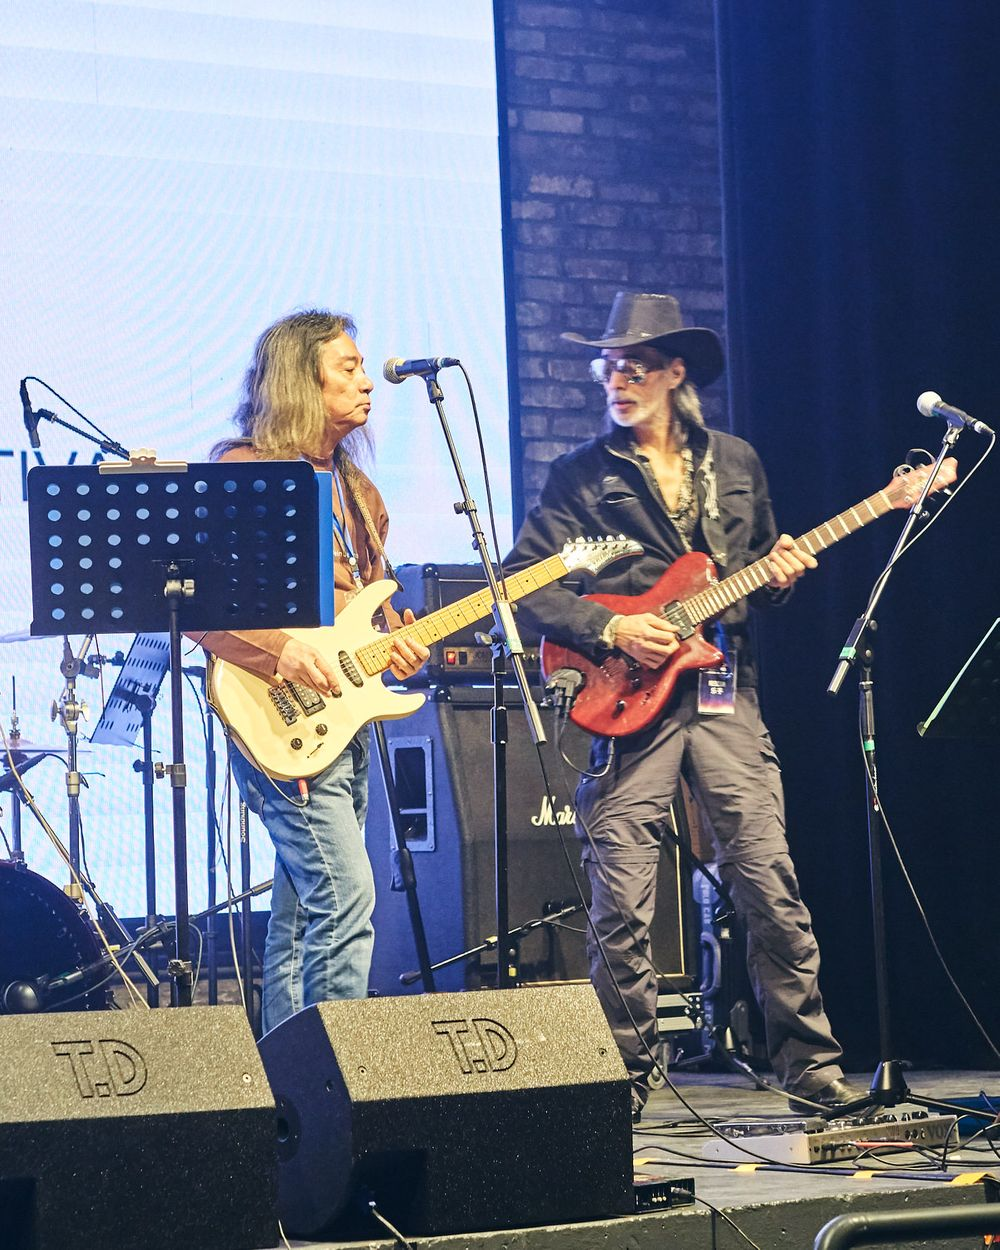 Never too old to rock  Zhuhai CTC Come Together Charity 2019 Festival Concert Guangdong China